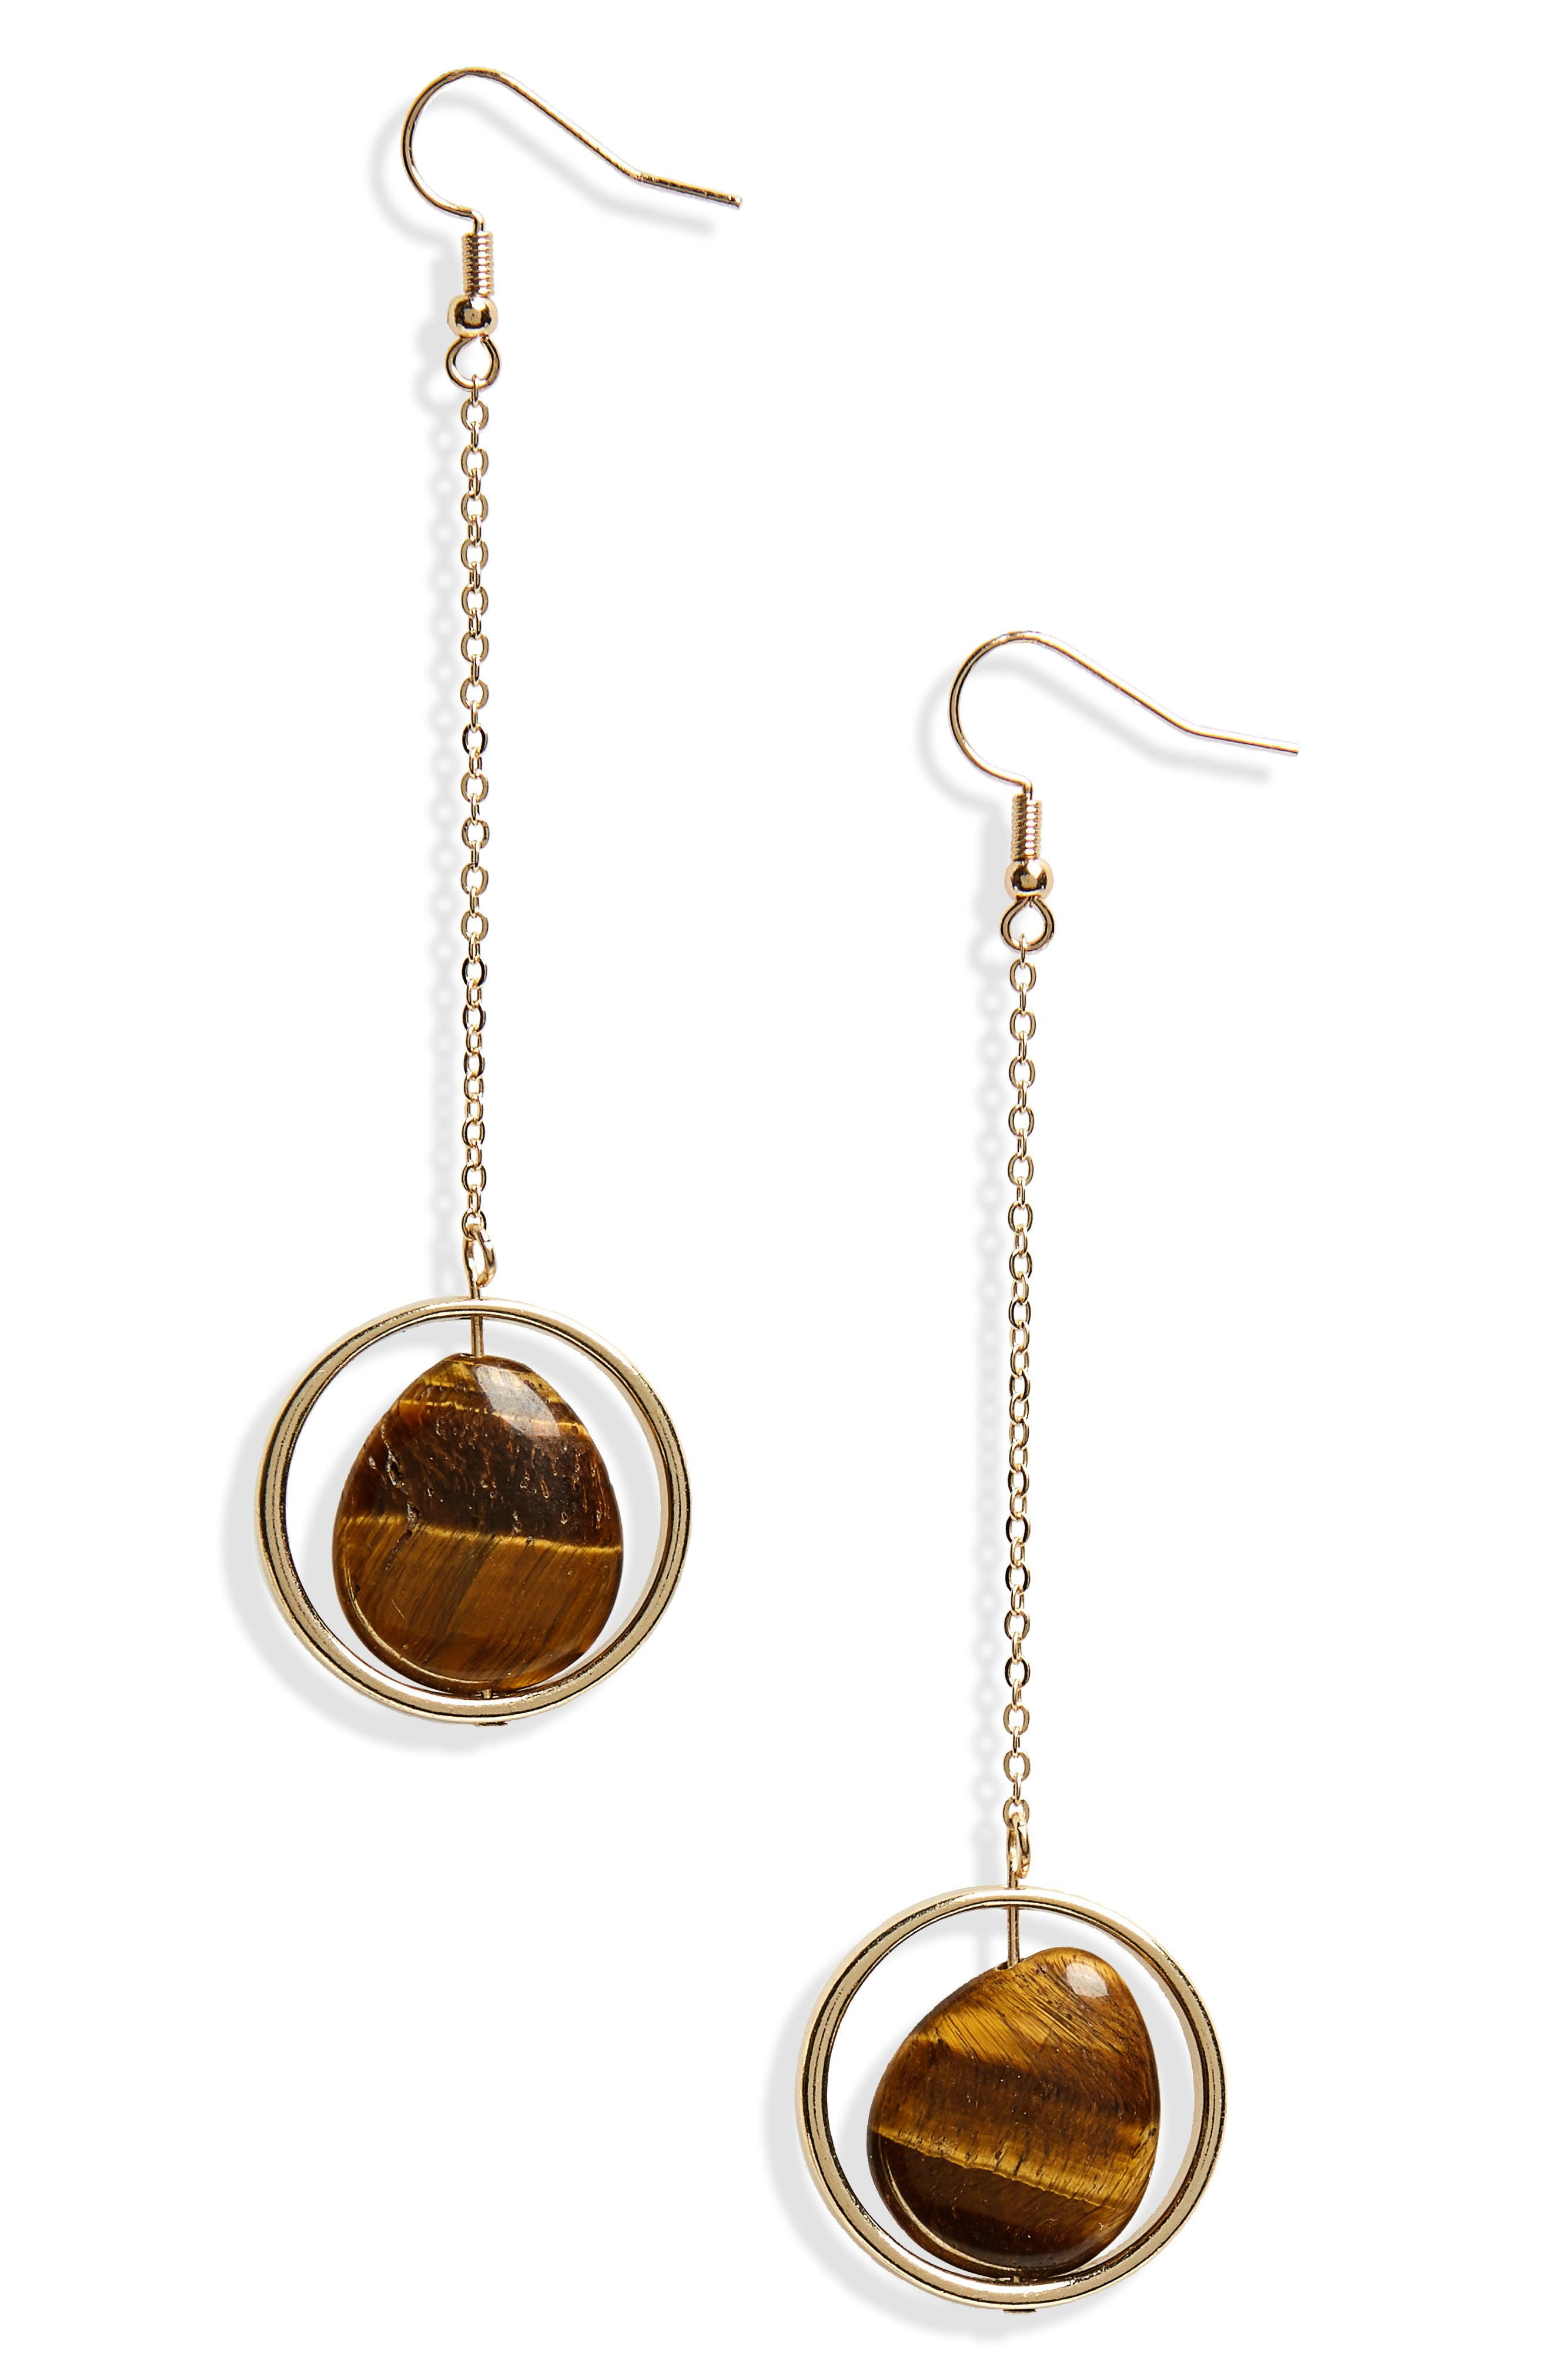 Tiger's Eye Drop Earrings,                             Main thumbnail 1, color,                             GOLD/ STONE